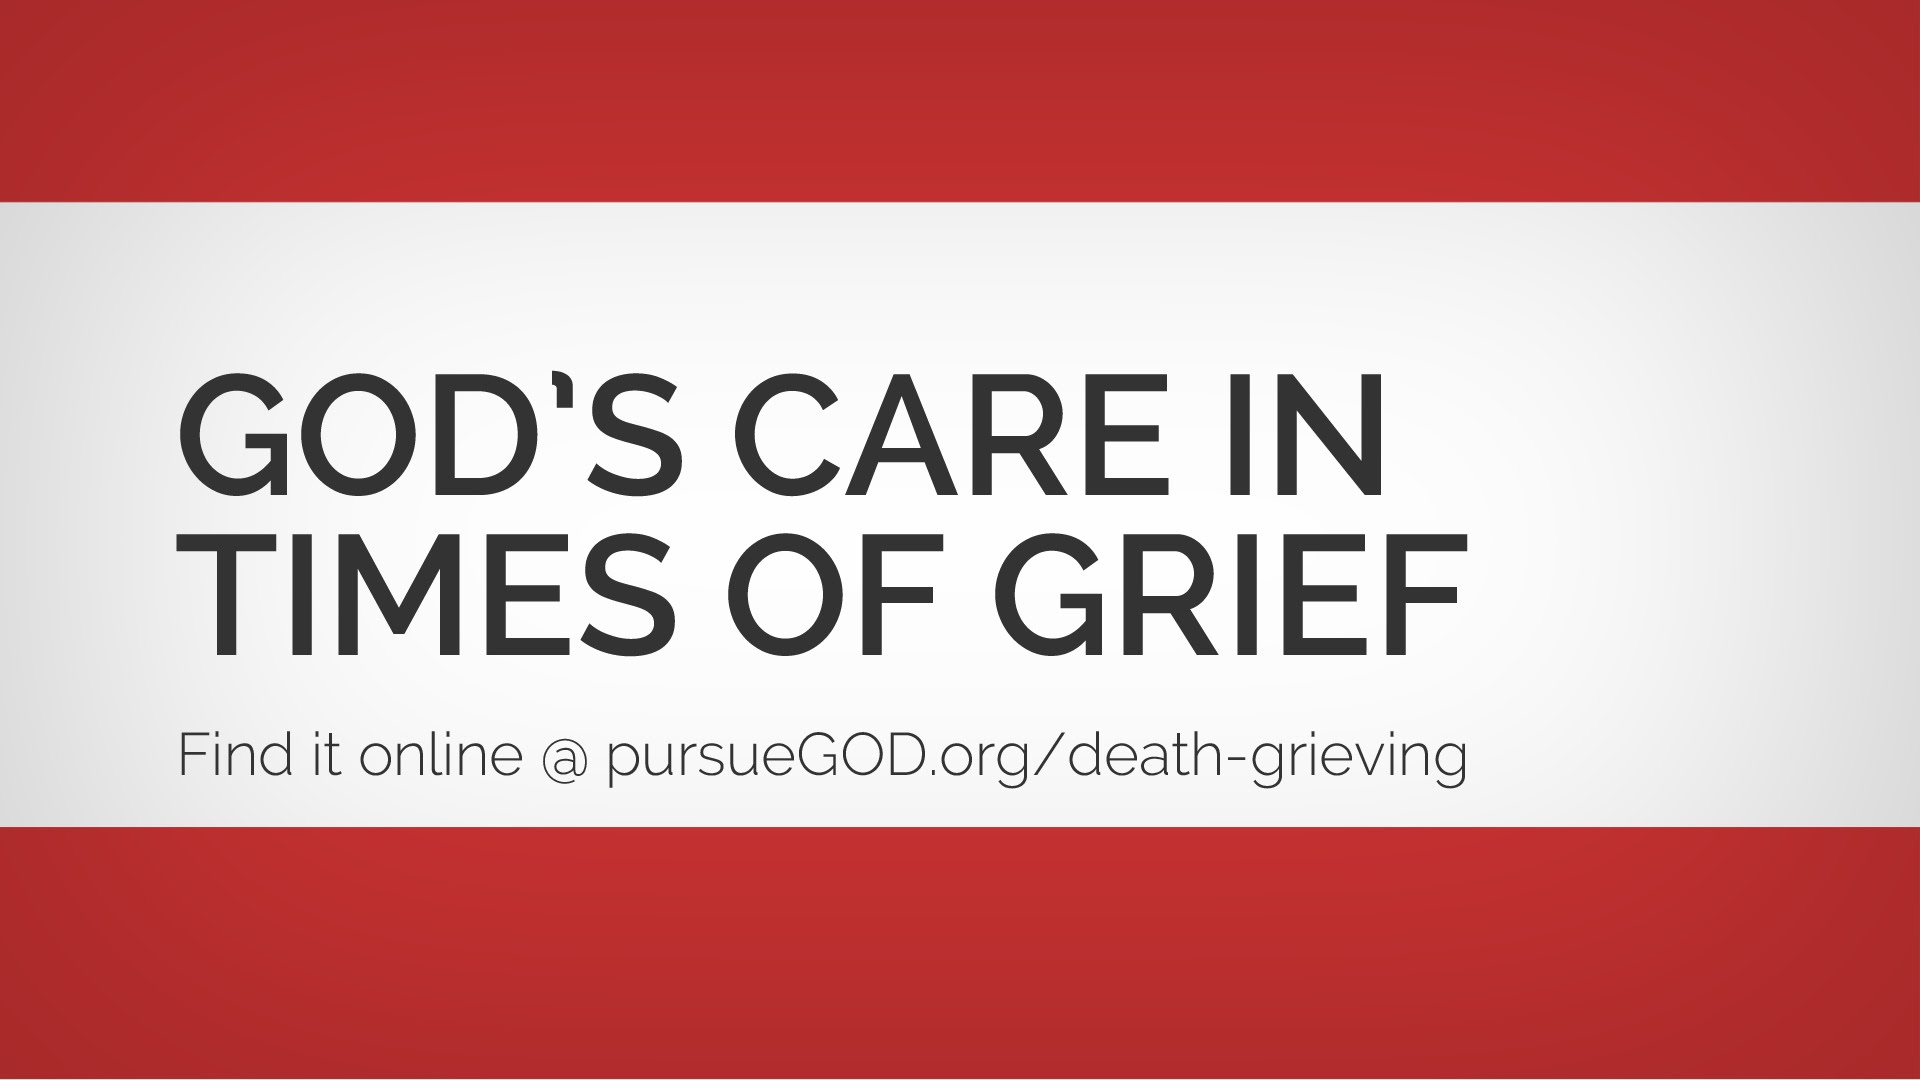 God's Care in Times of Grief